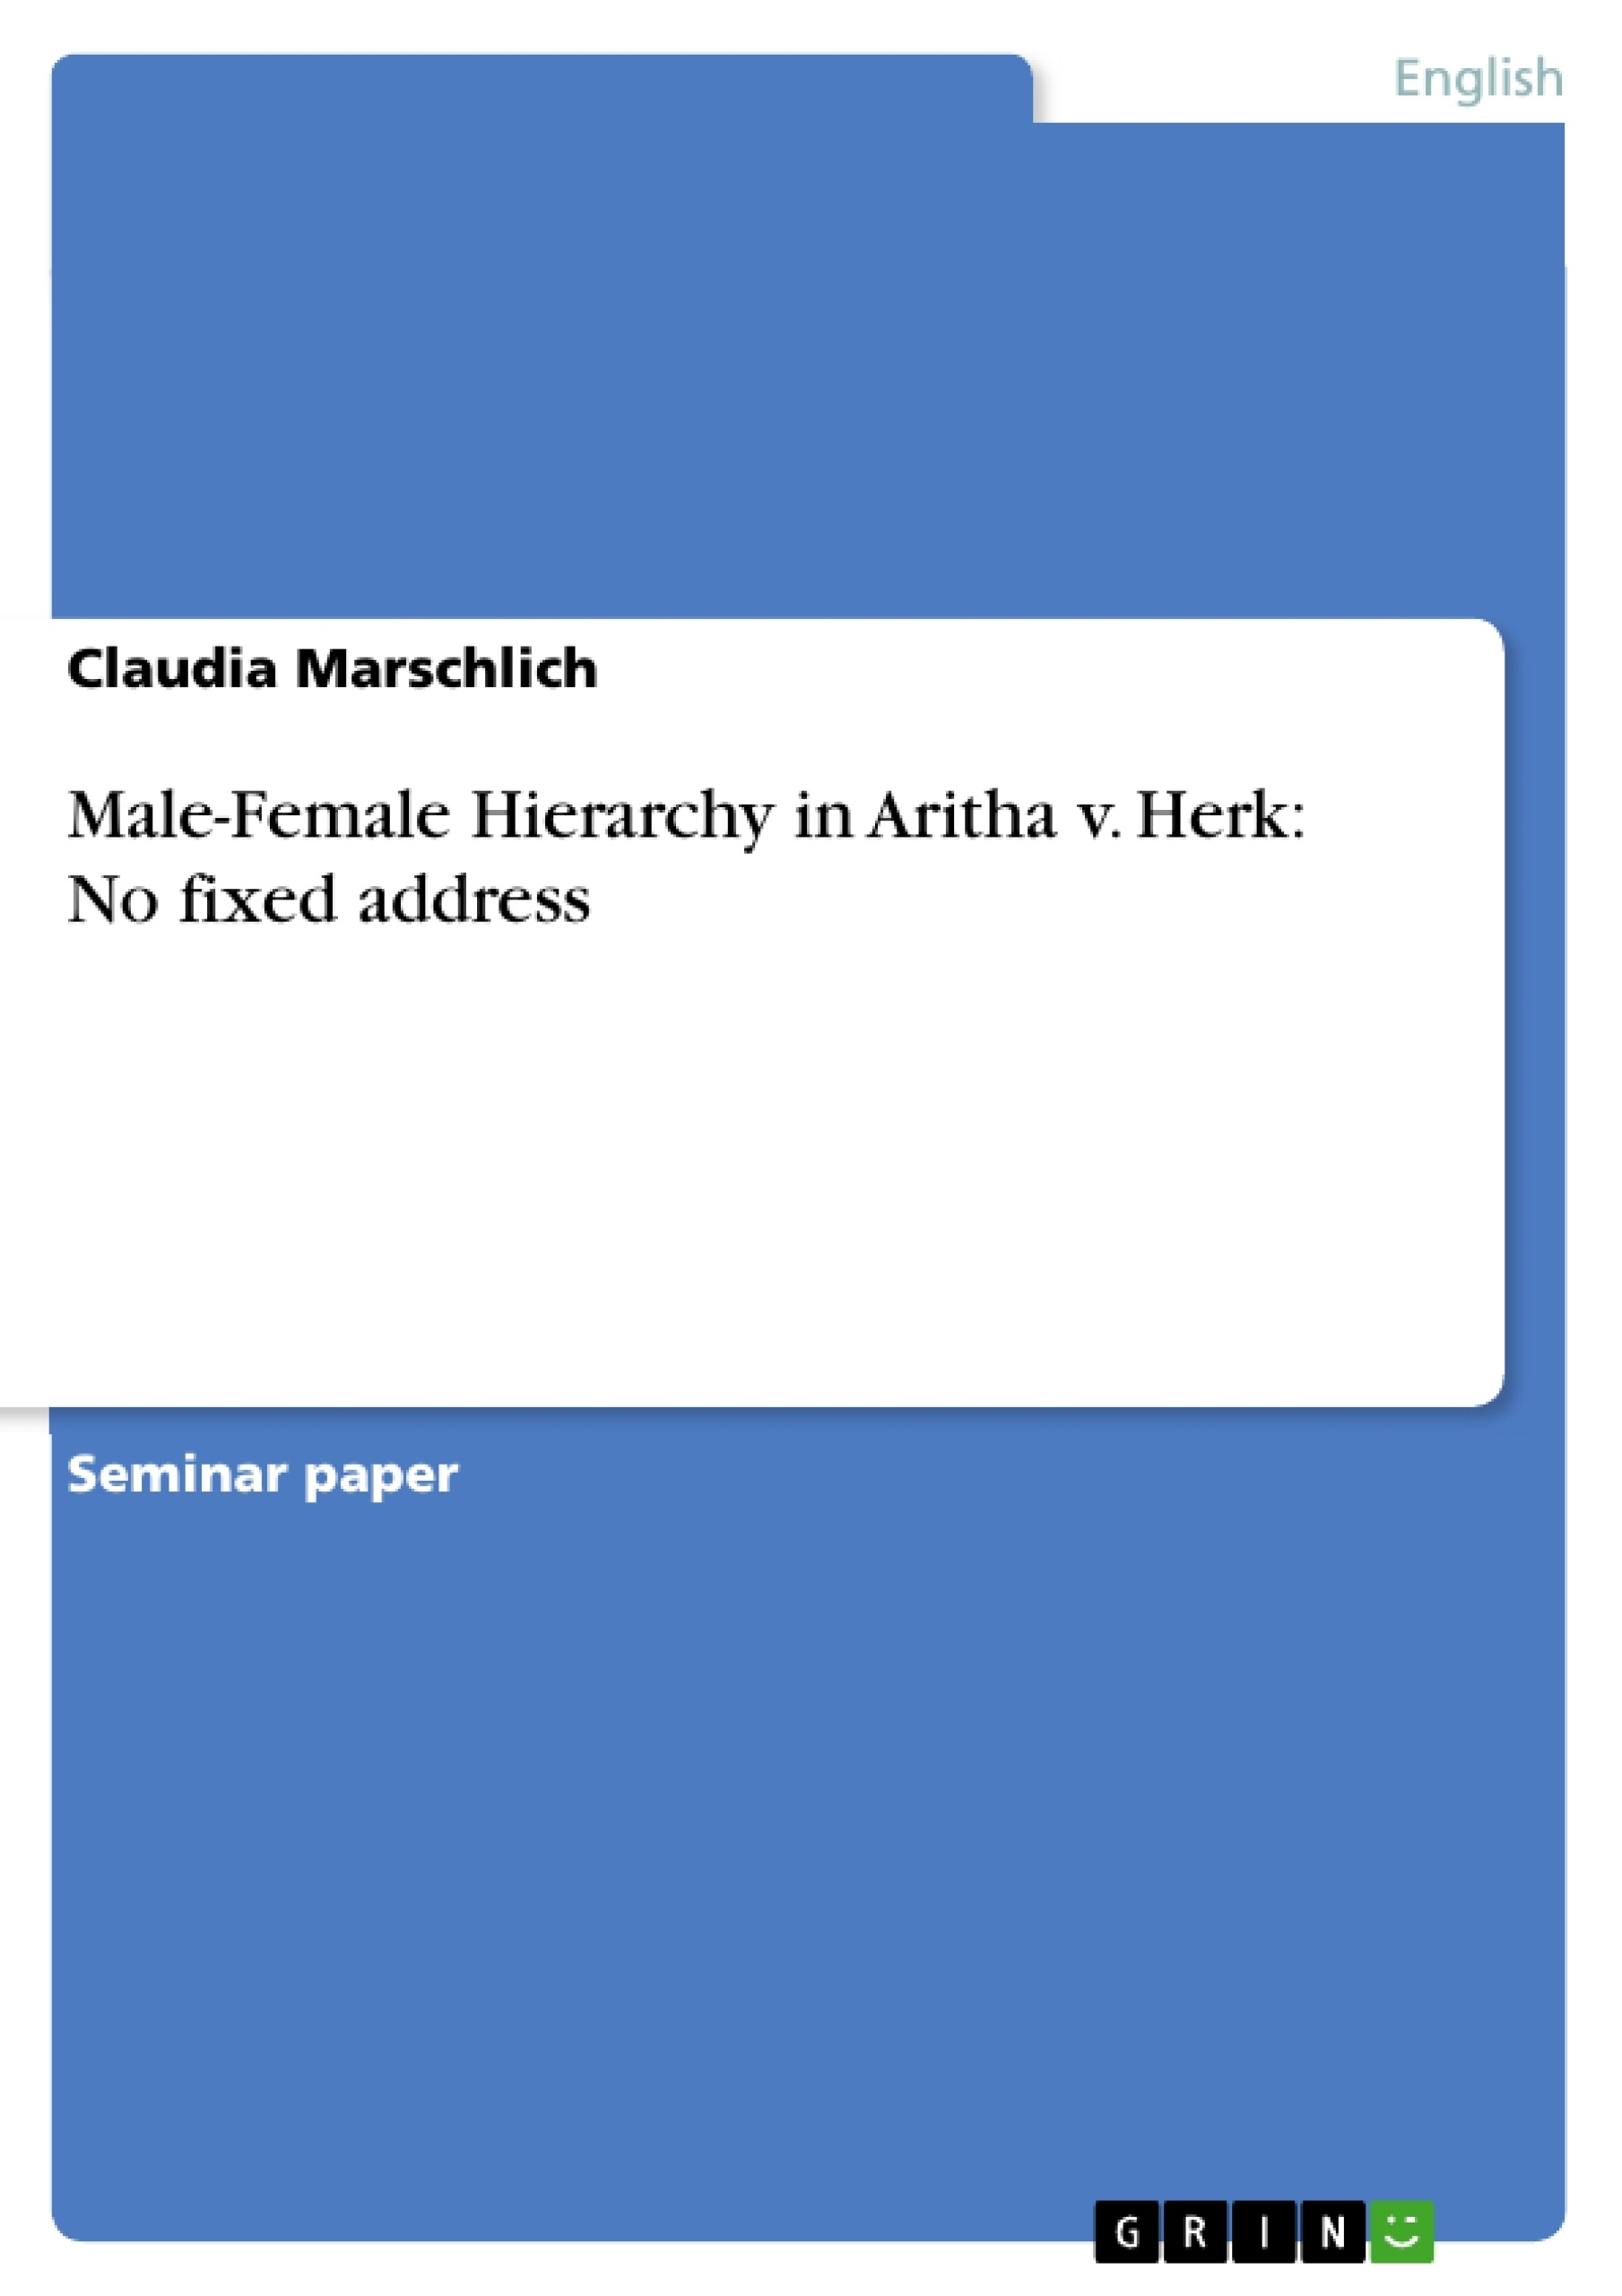 Title: Male-Female Hierarchy in Aritha v. Herk: No fixed address